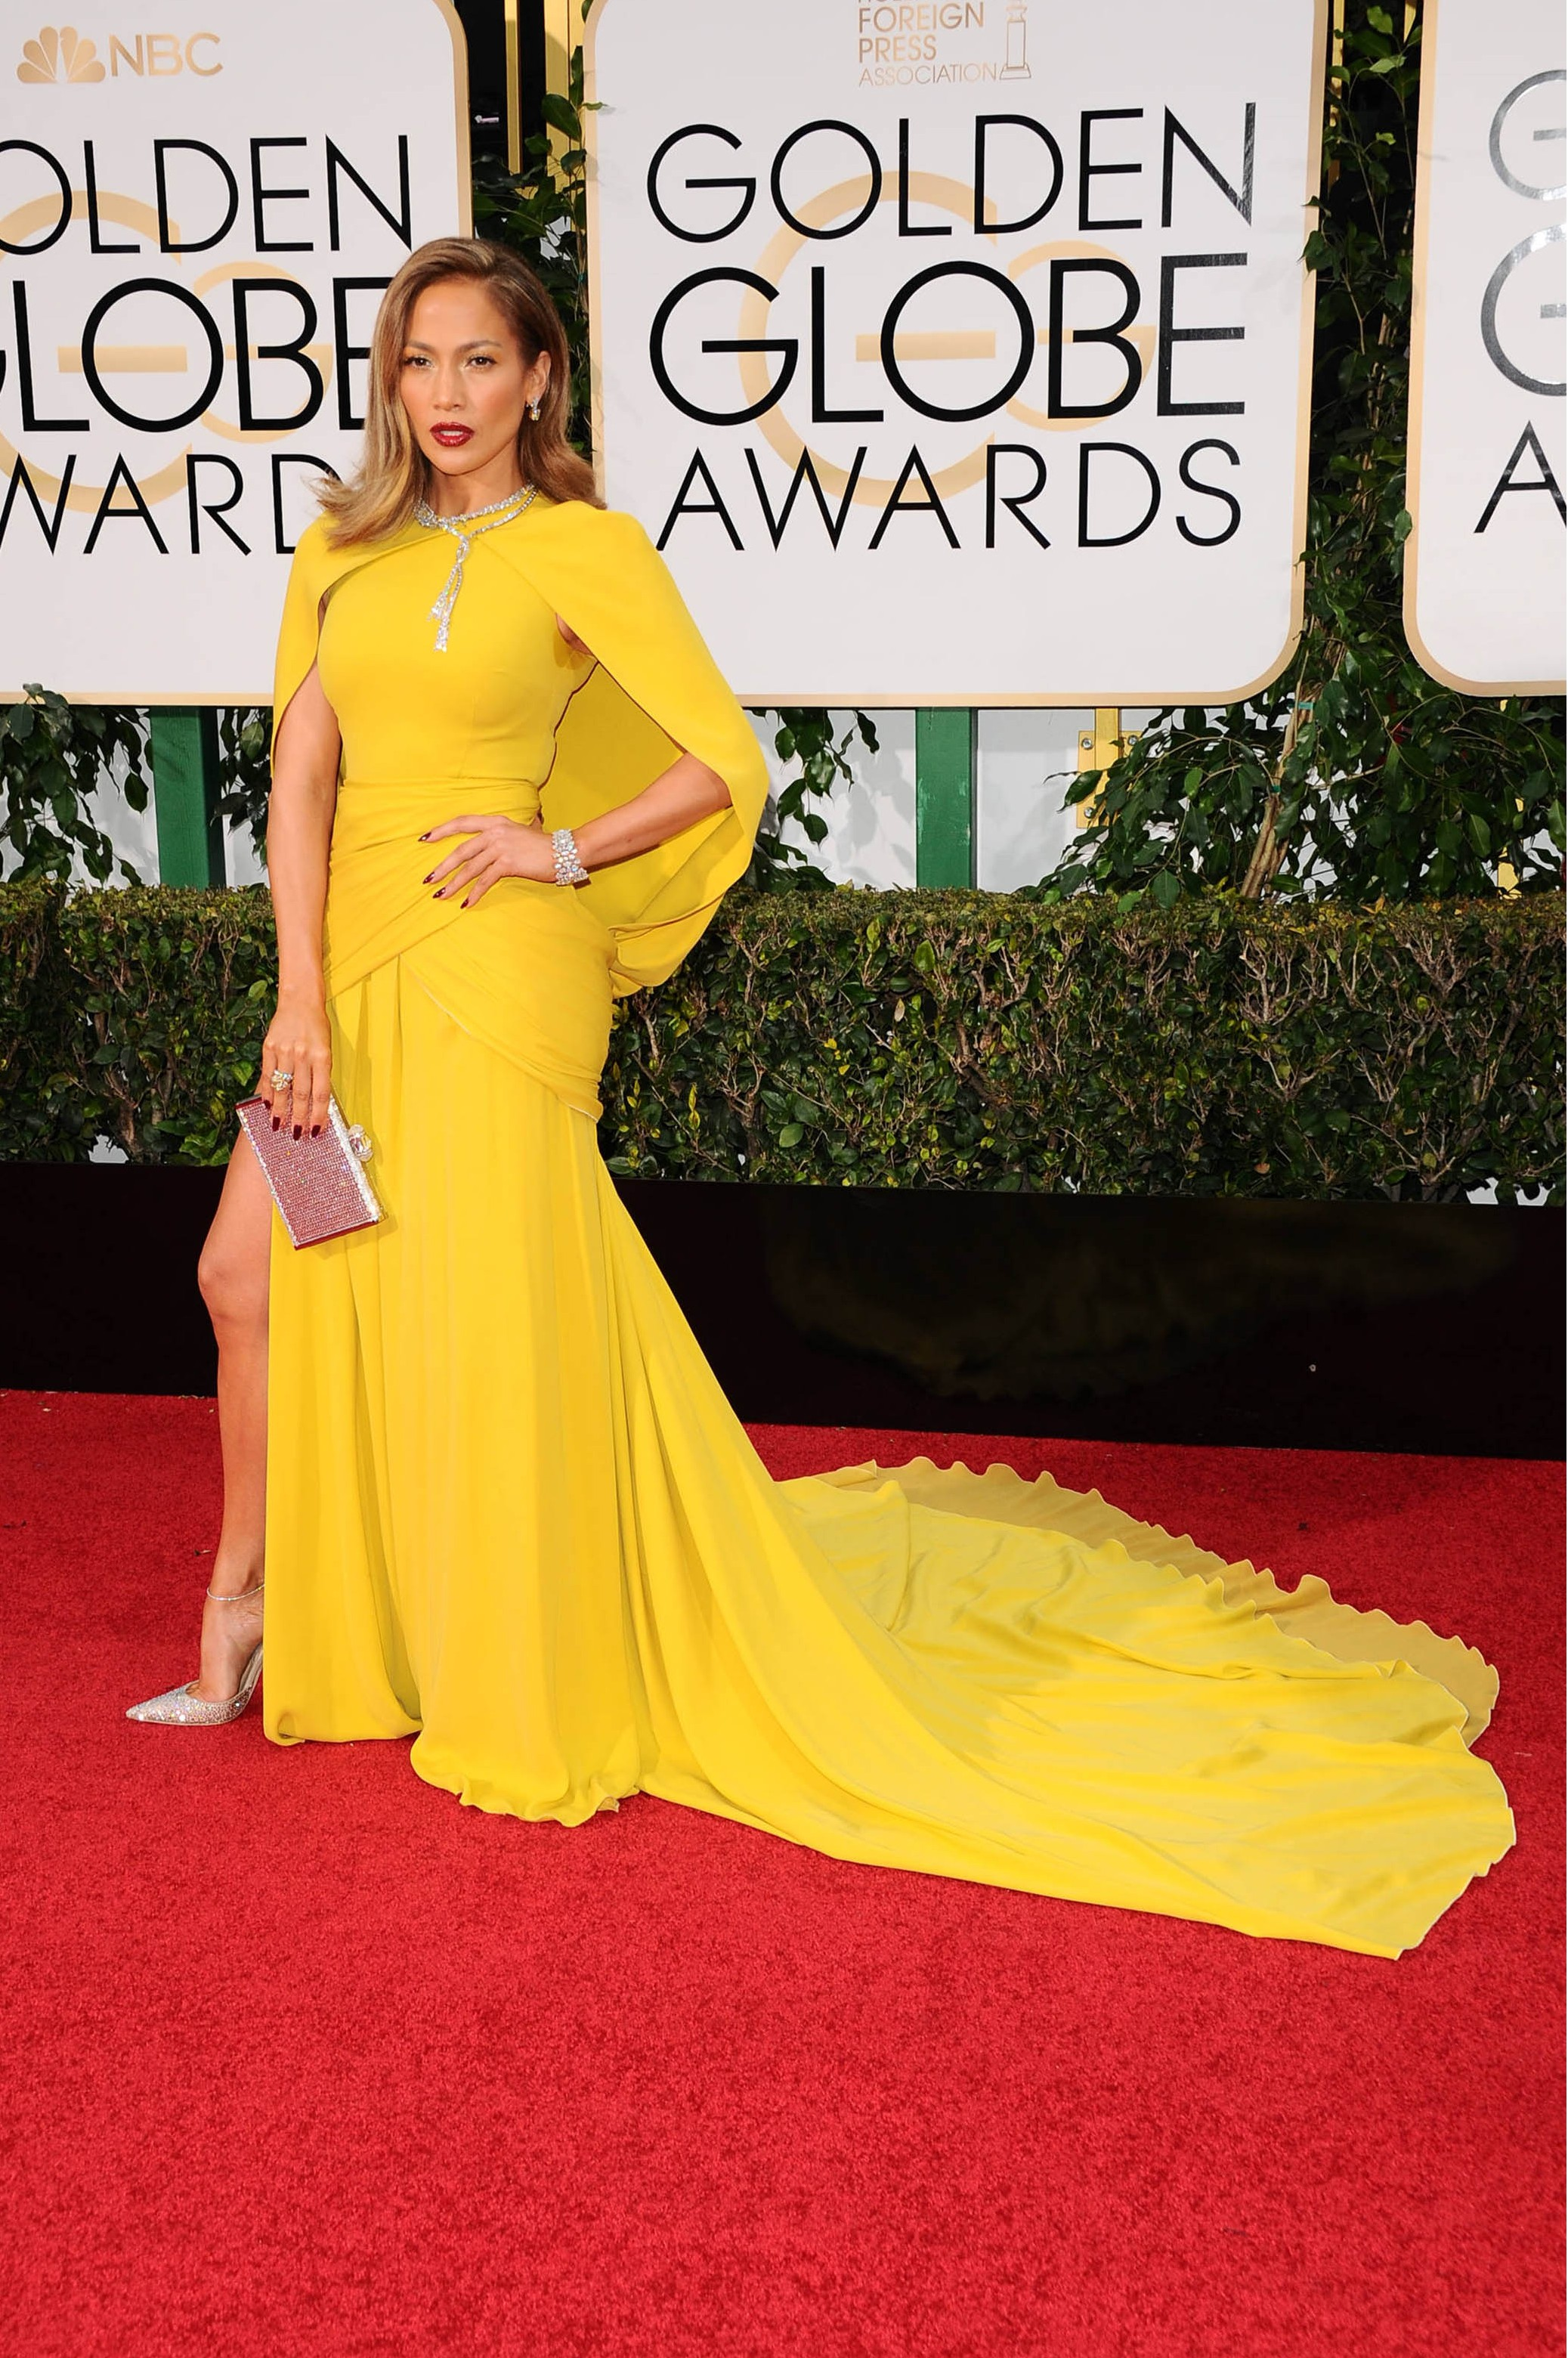 Mandatory Credit: Photo by Startraks Photo/REX/Shutterstock (5528378ee) Jennifer Lopez 73rd Annual Golden Globe Awards, Arrivals, Los Angeles, America - 10 Jan 2016